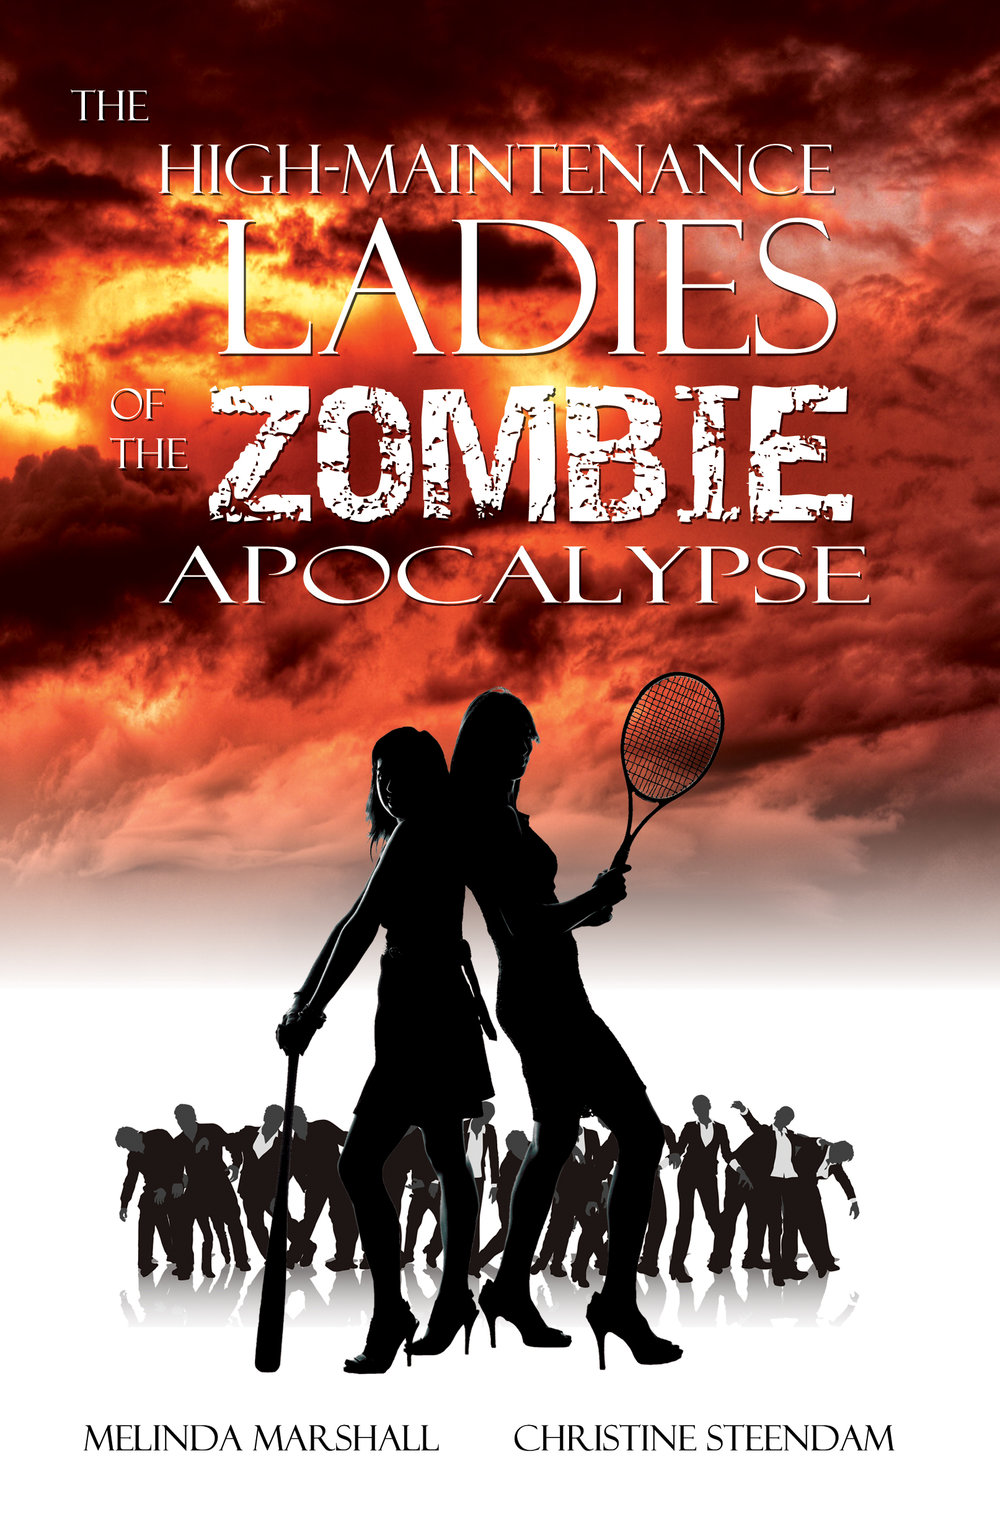 The High-Maintenance Ladies of the Zombie Apocalypse